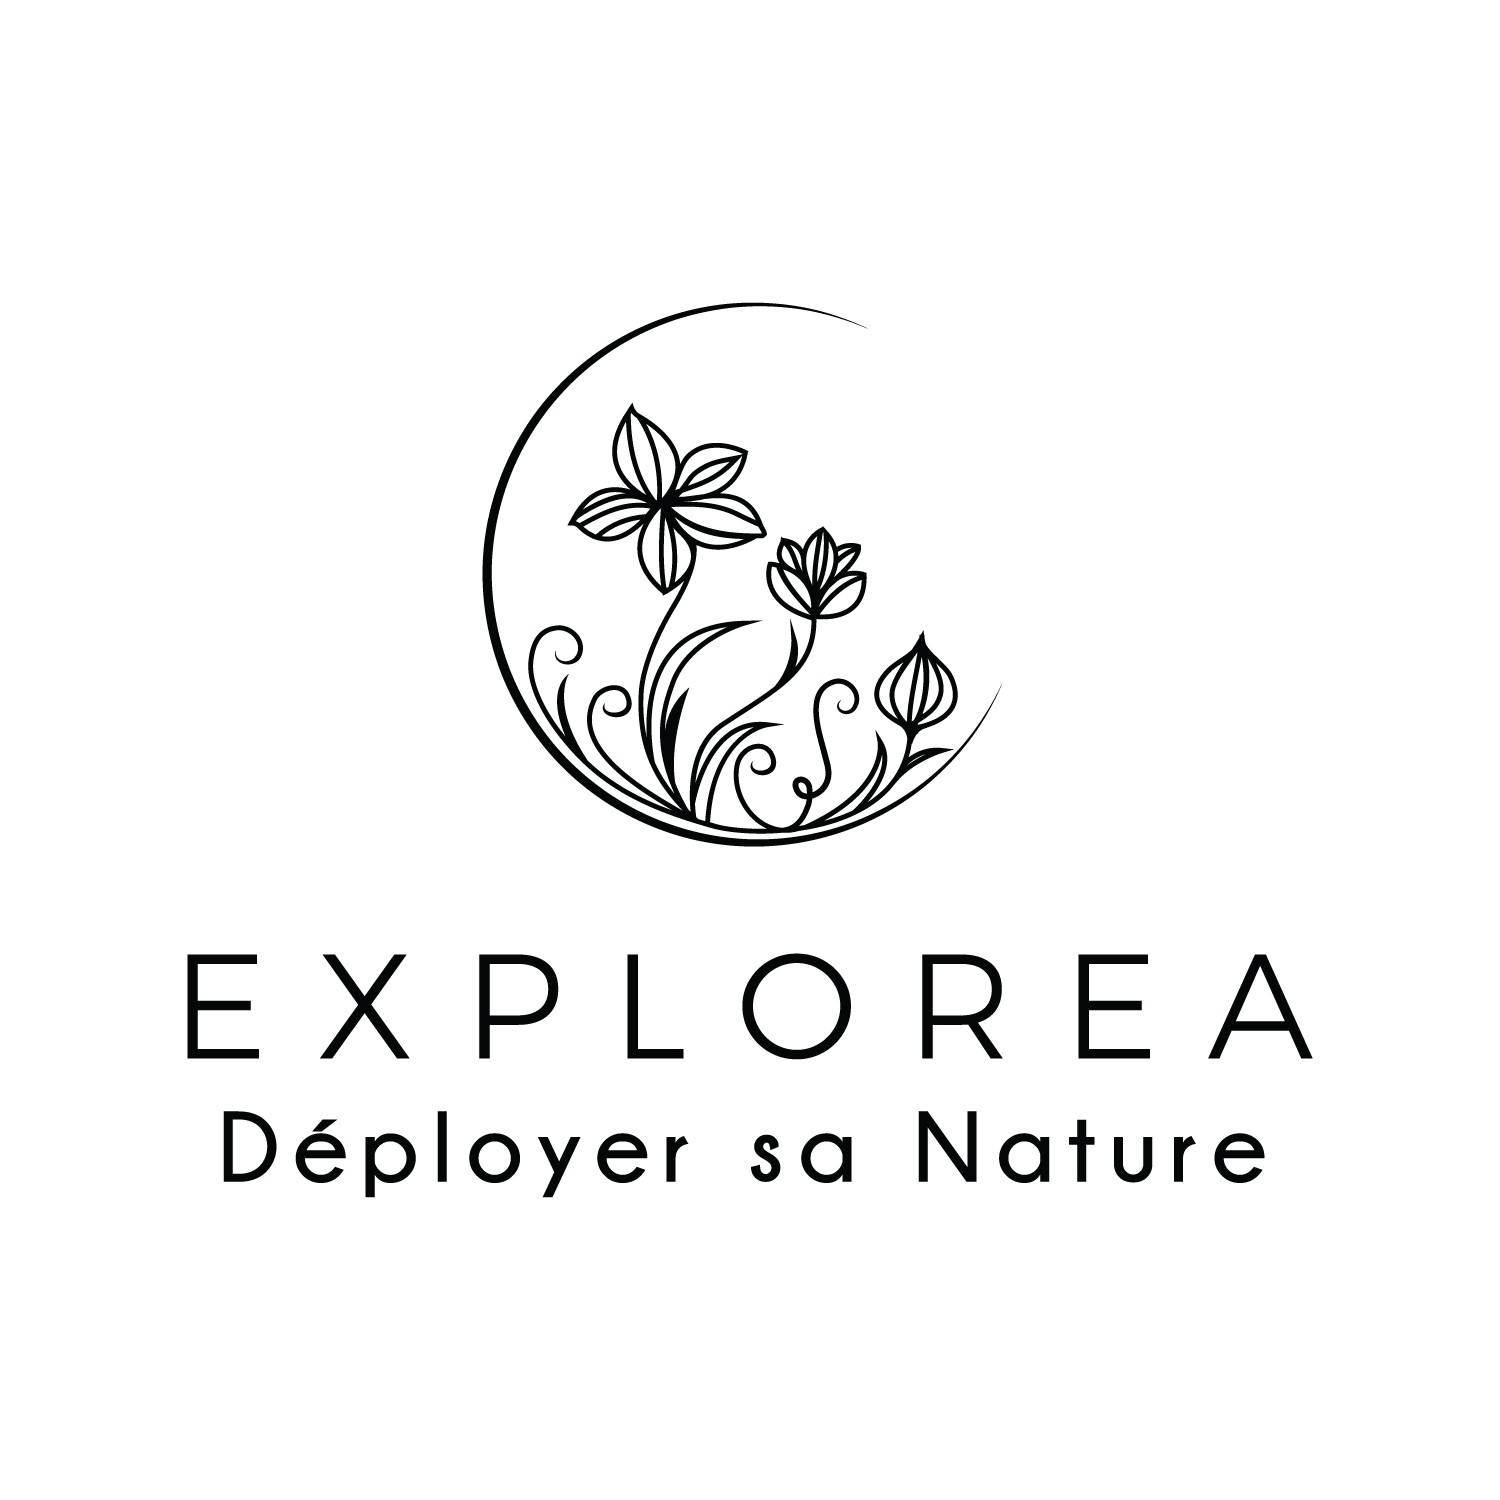 A NEW LOGO FOR EXPLOREA  coaching with nature